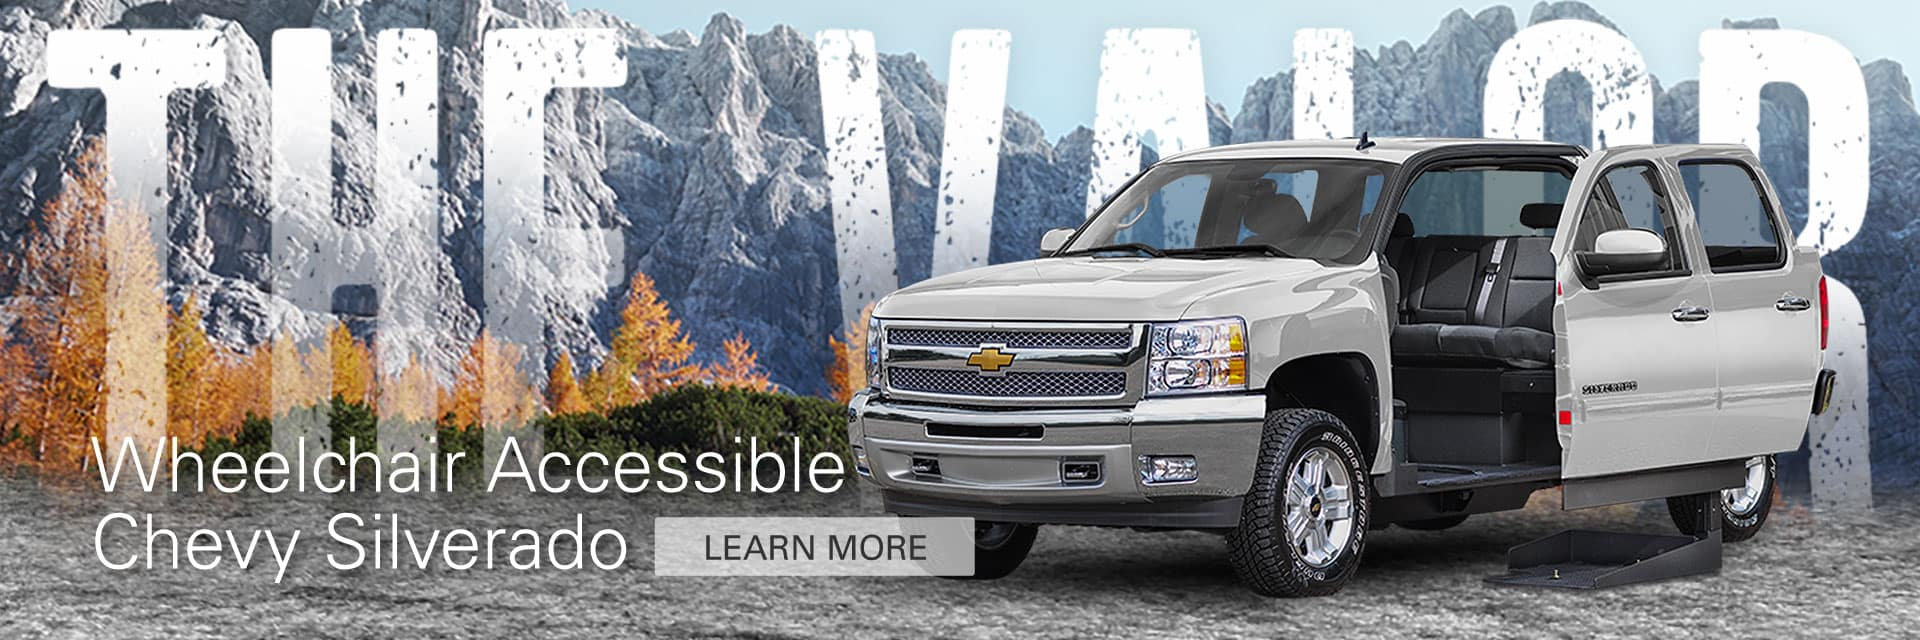 The Valor Wheelchair Accessible Truck from Freedom Motors